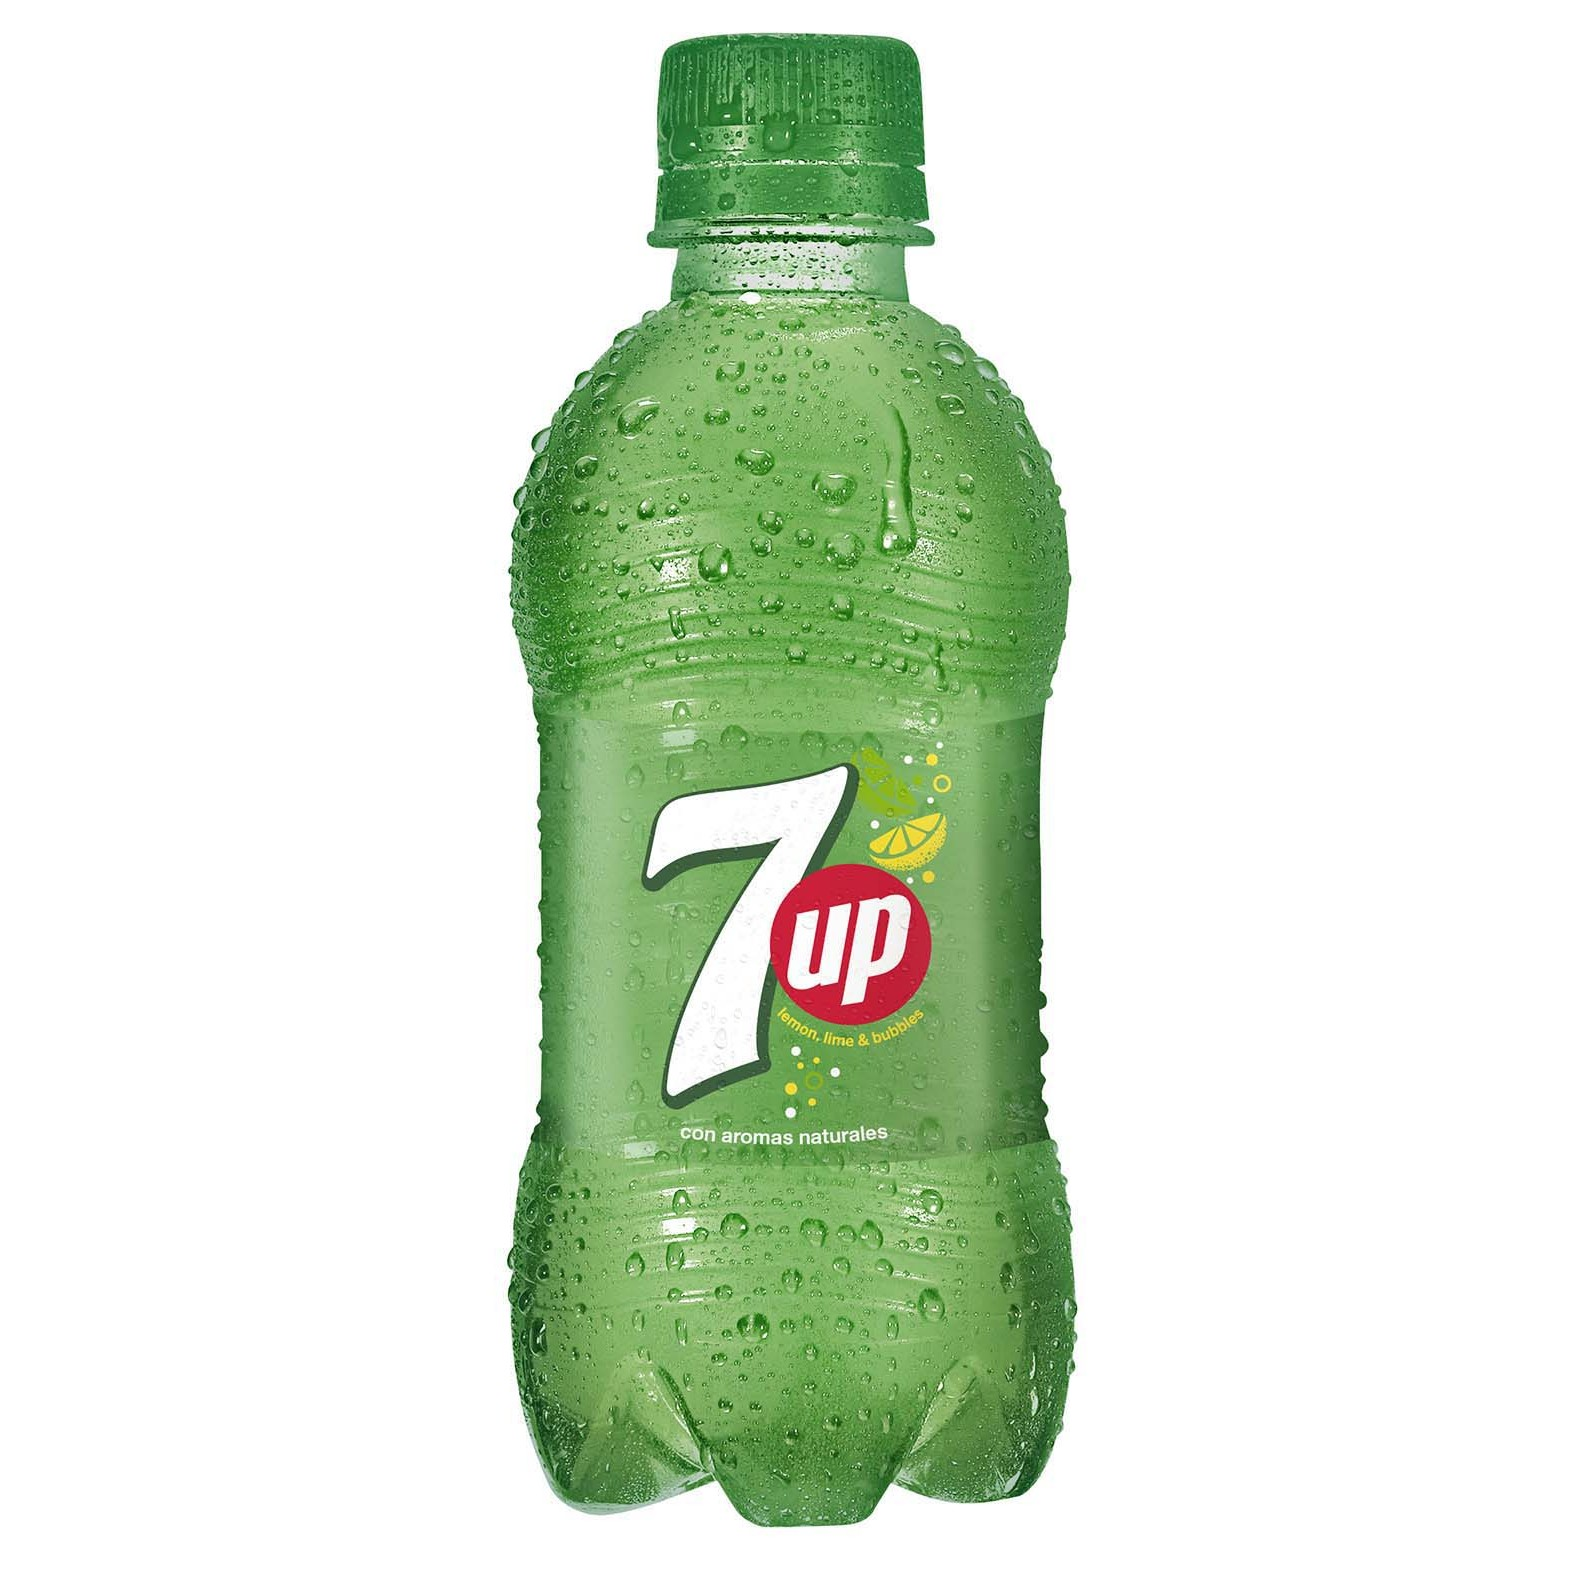 7up 7up regular 330ml pet de 33cl. en botella